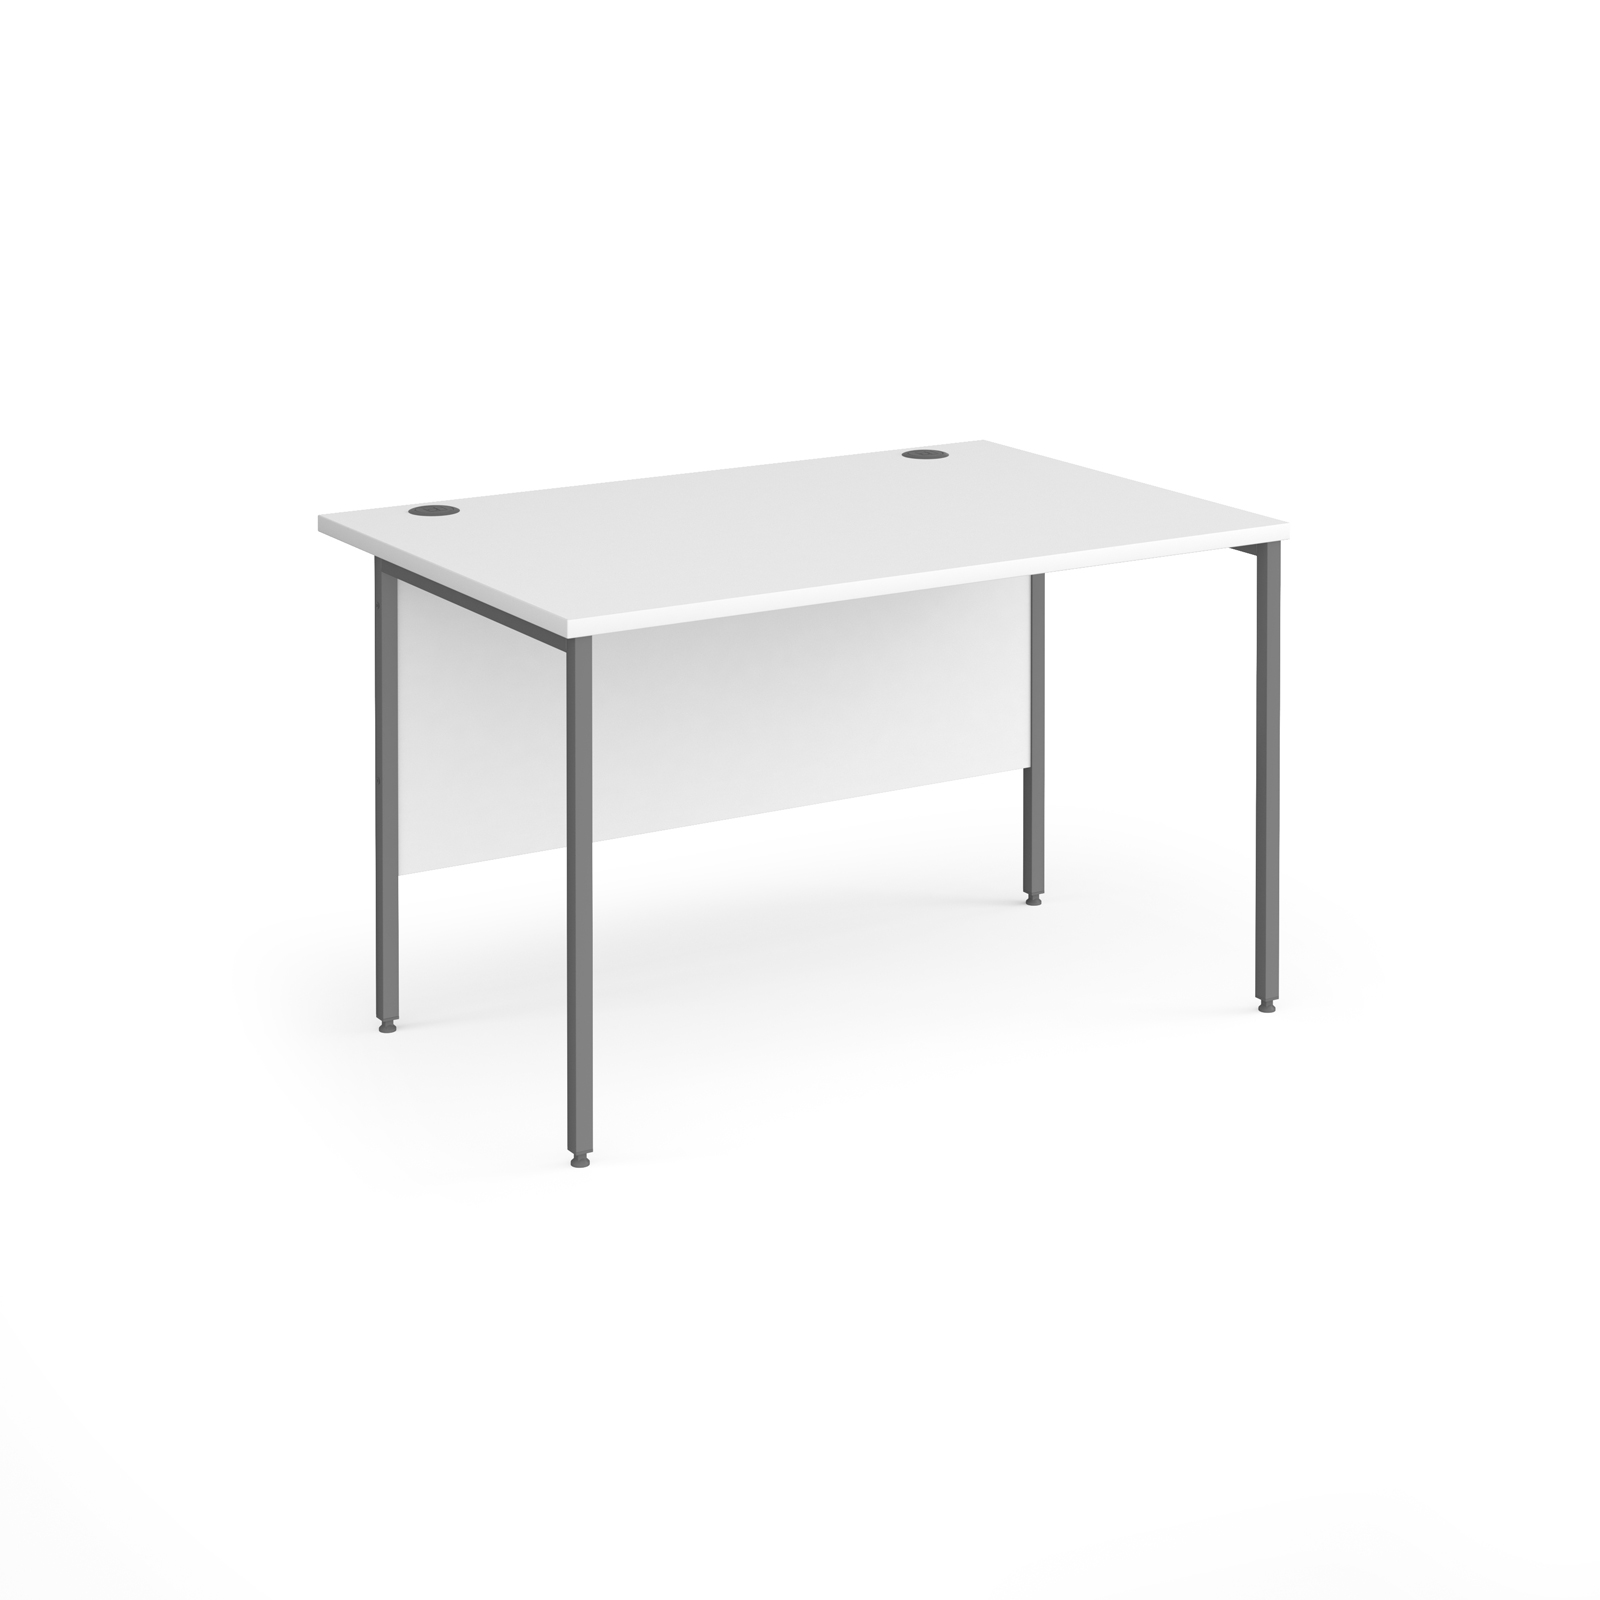 Contract 25 straight desk with graphite H-Frame leg 1200mm x 800mm - white top